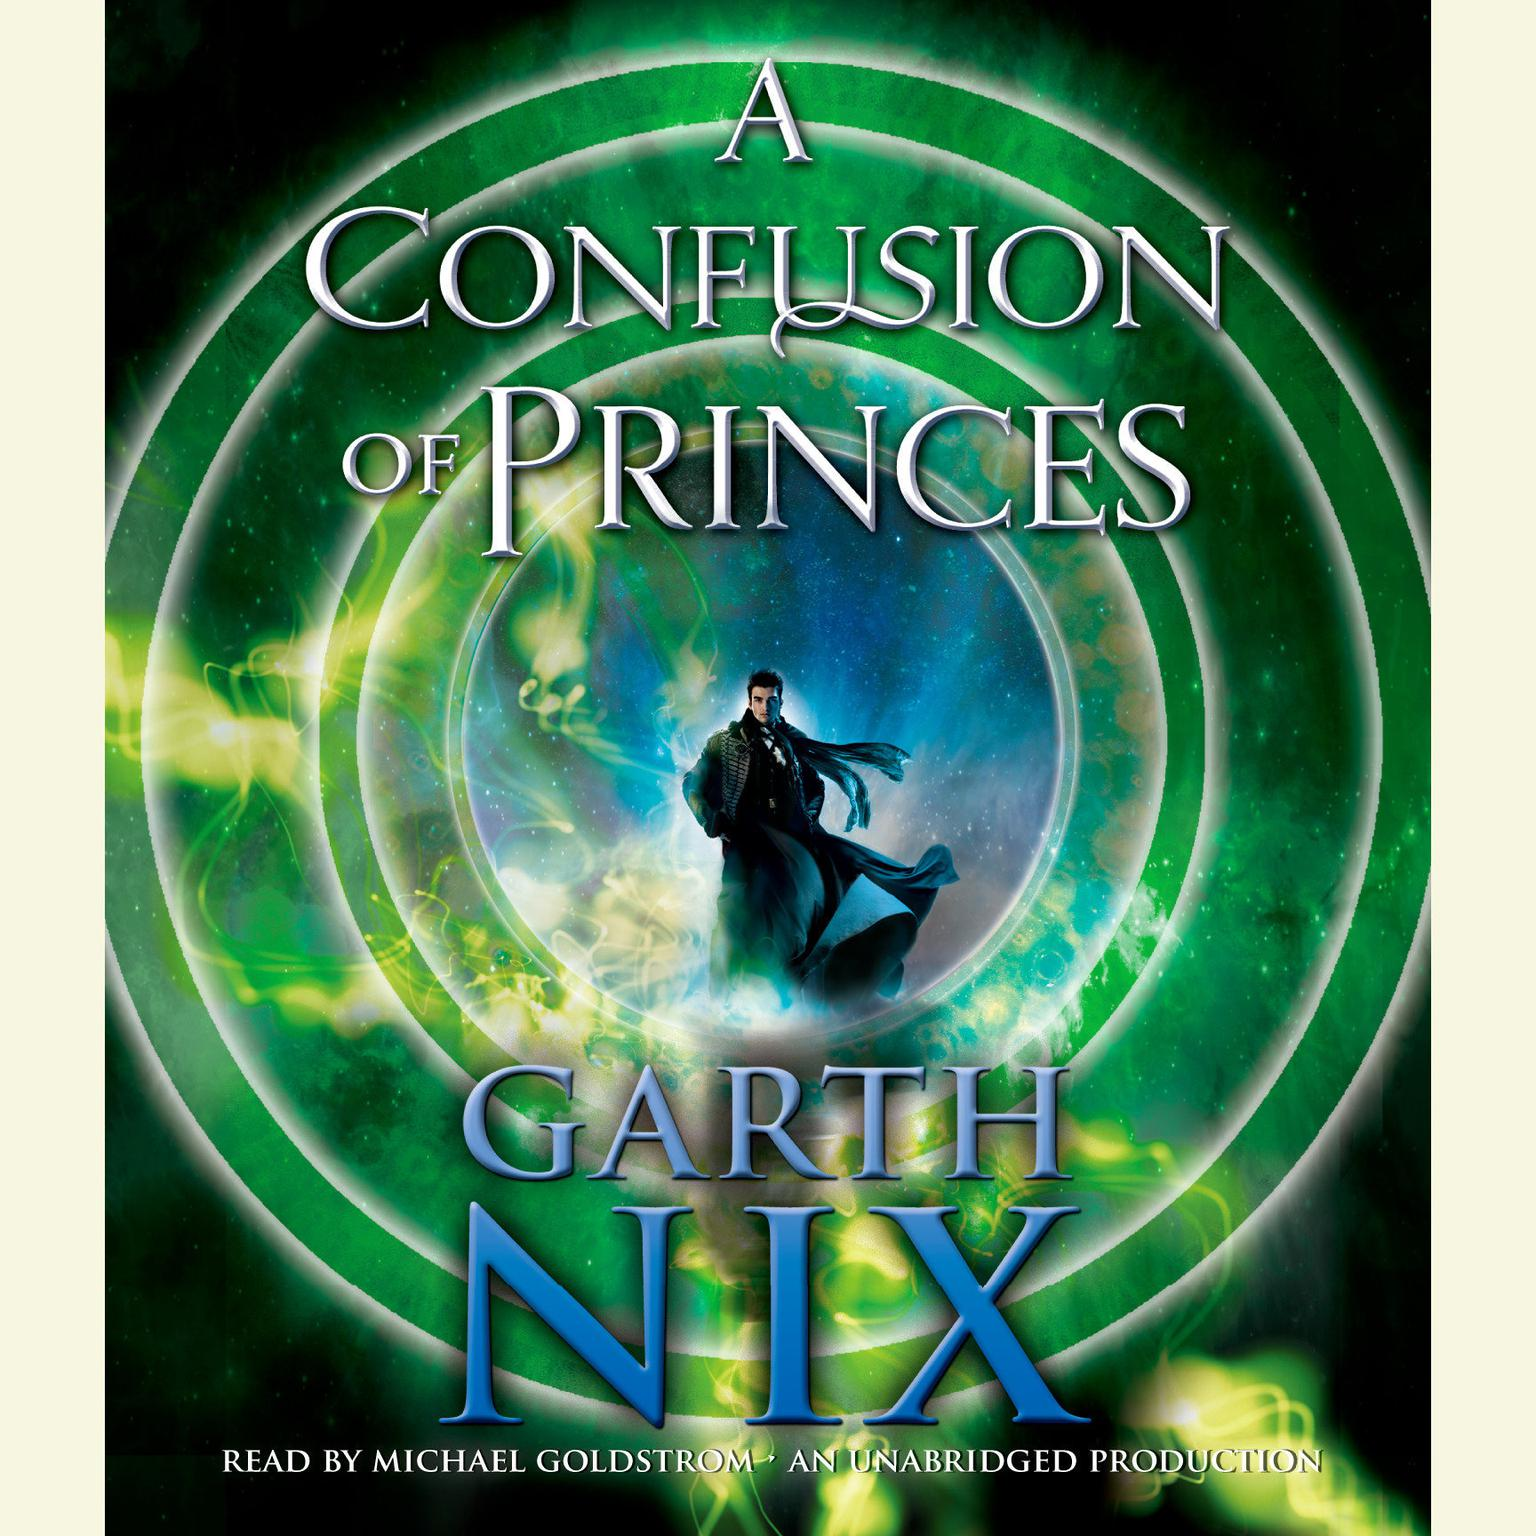 Printable A Confusion of Princes Audiobook Cover Art